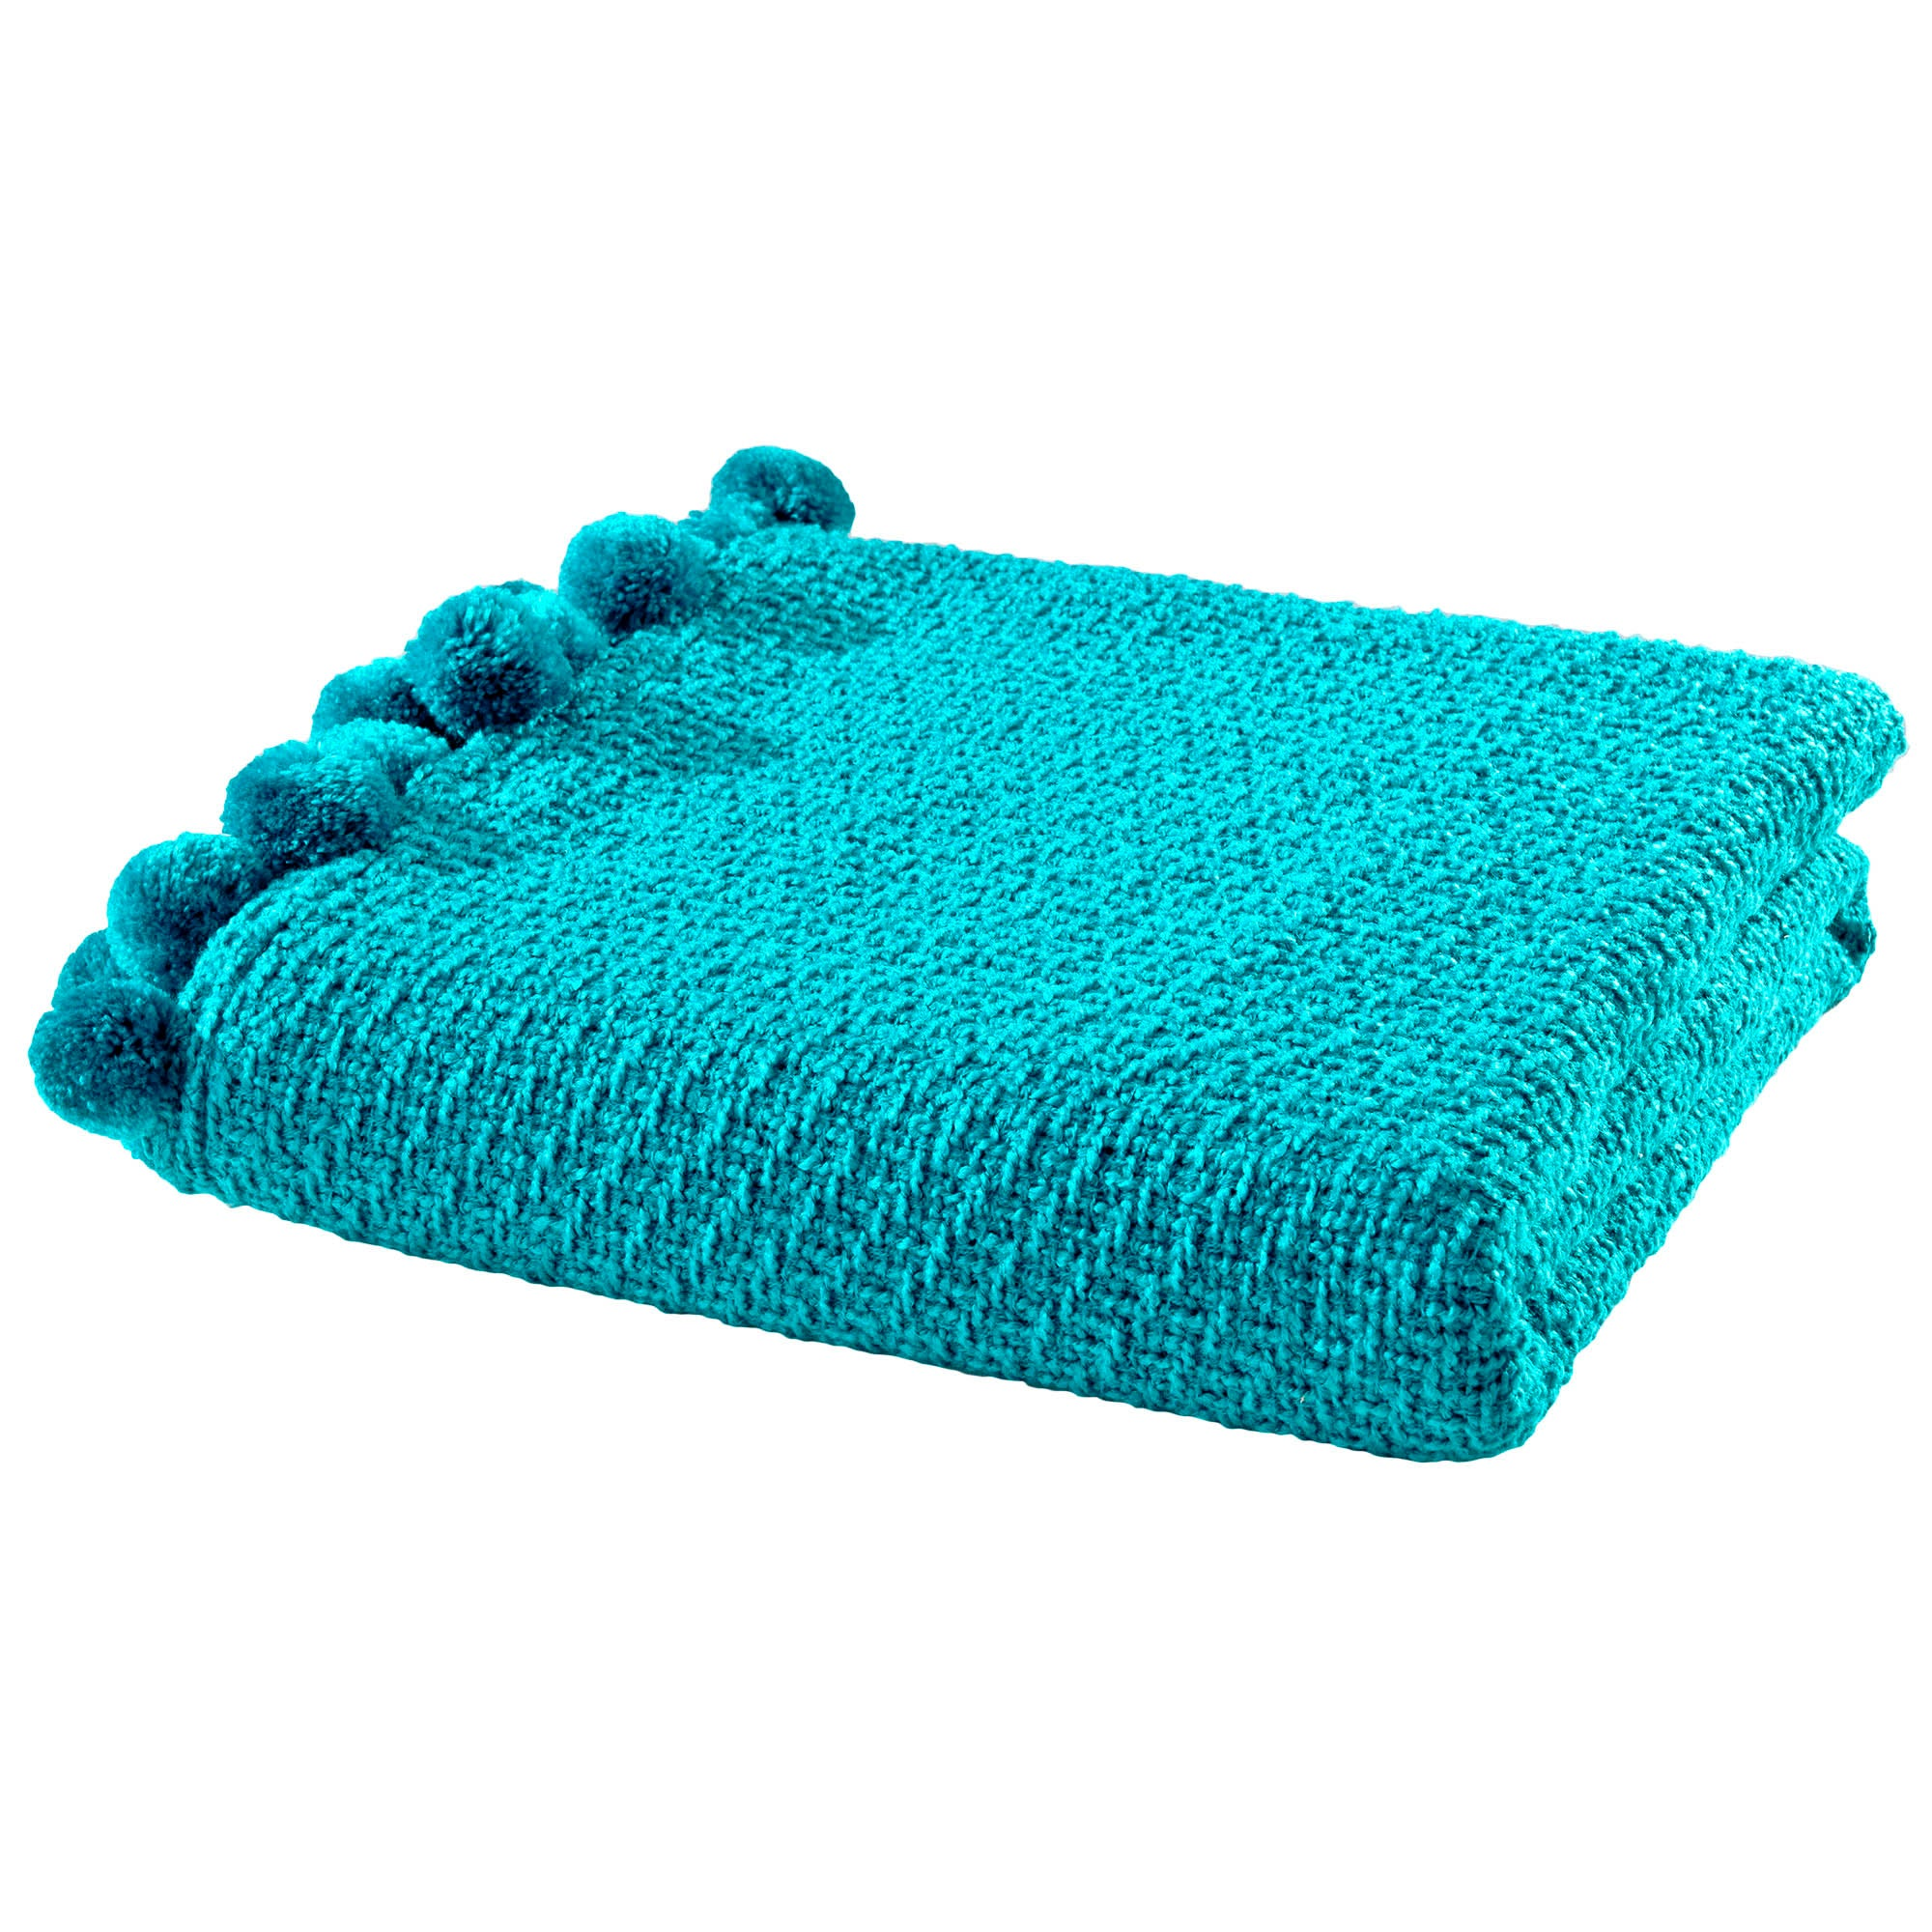 Knitted Pom Pom Throw